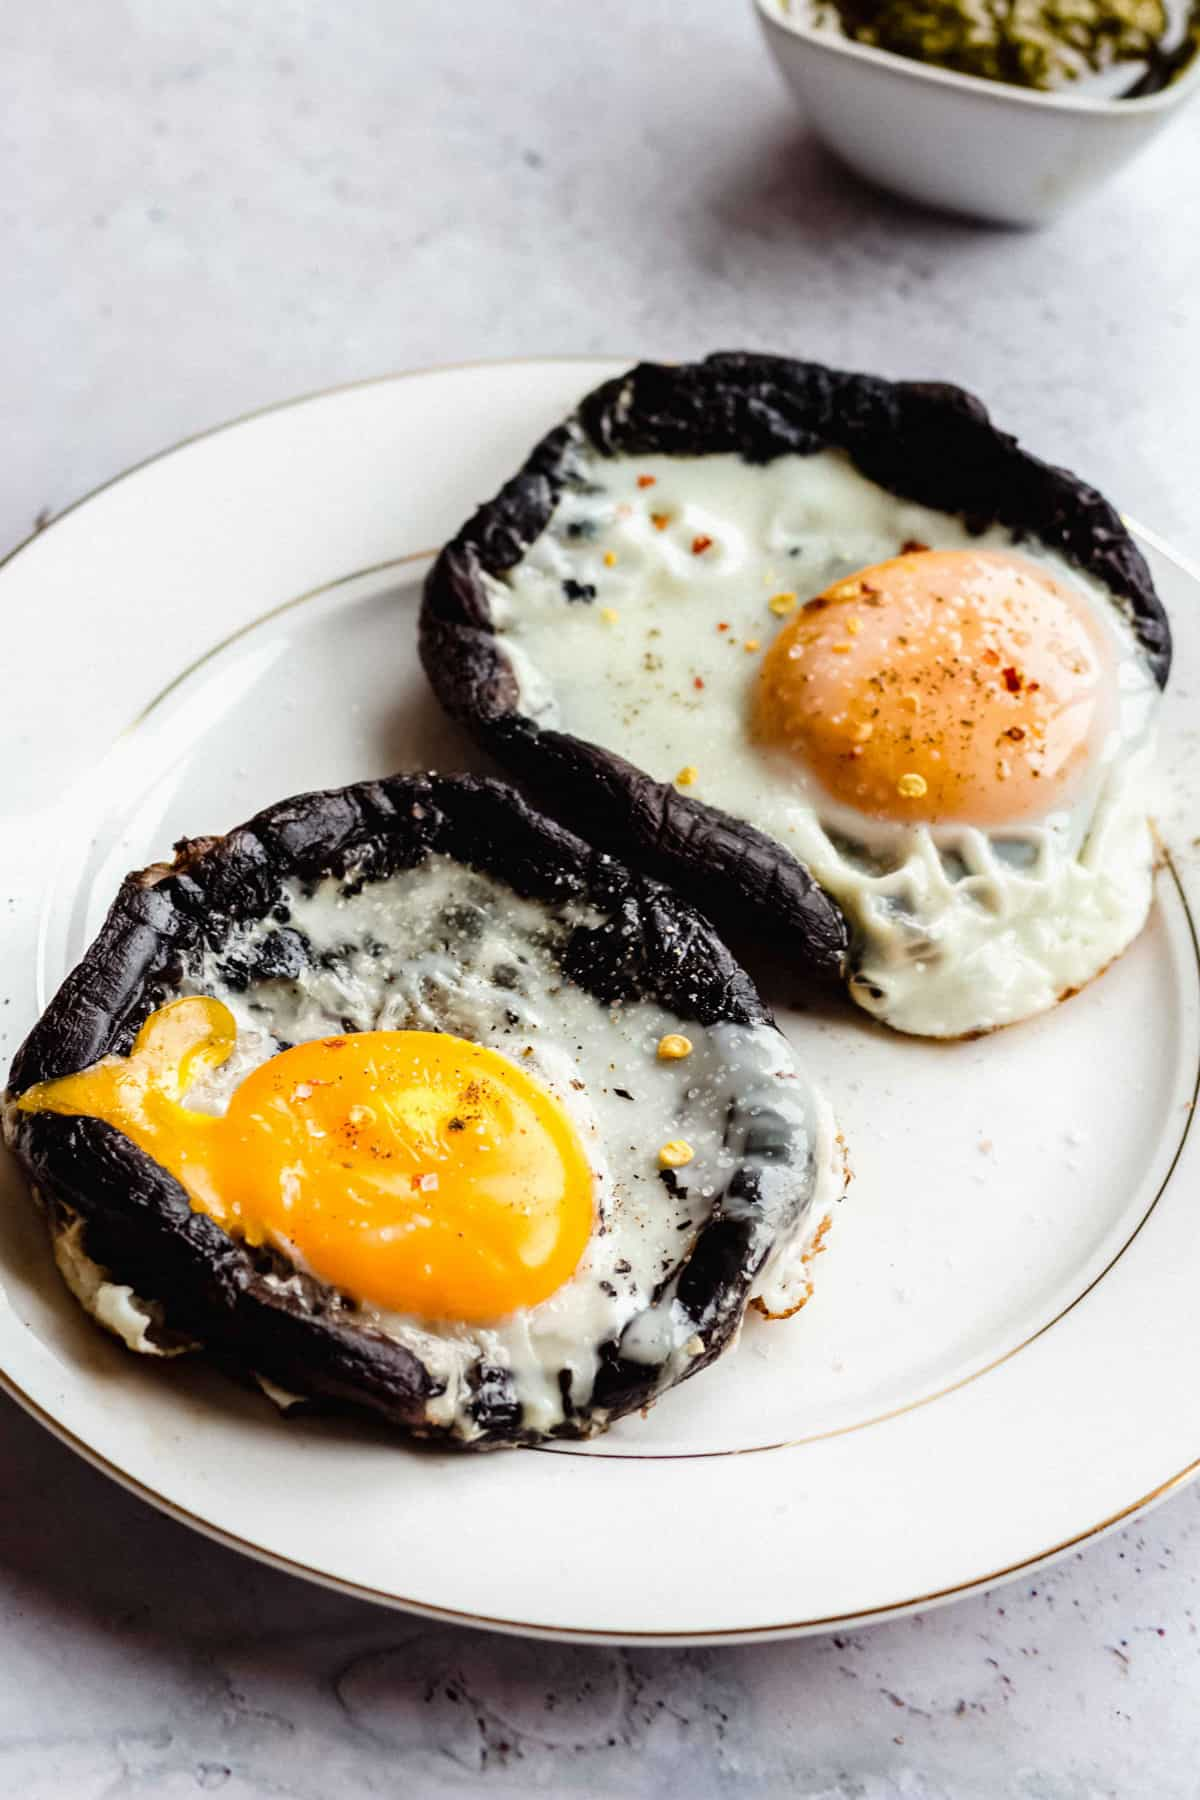 egg filled portobello mushrooms, keto friendly on plate